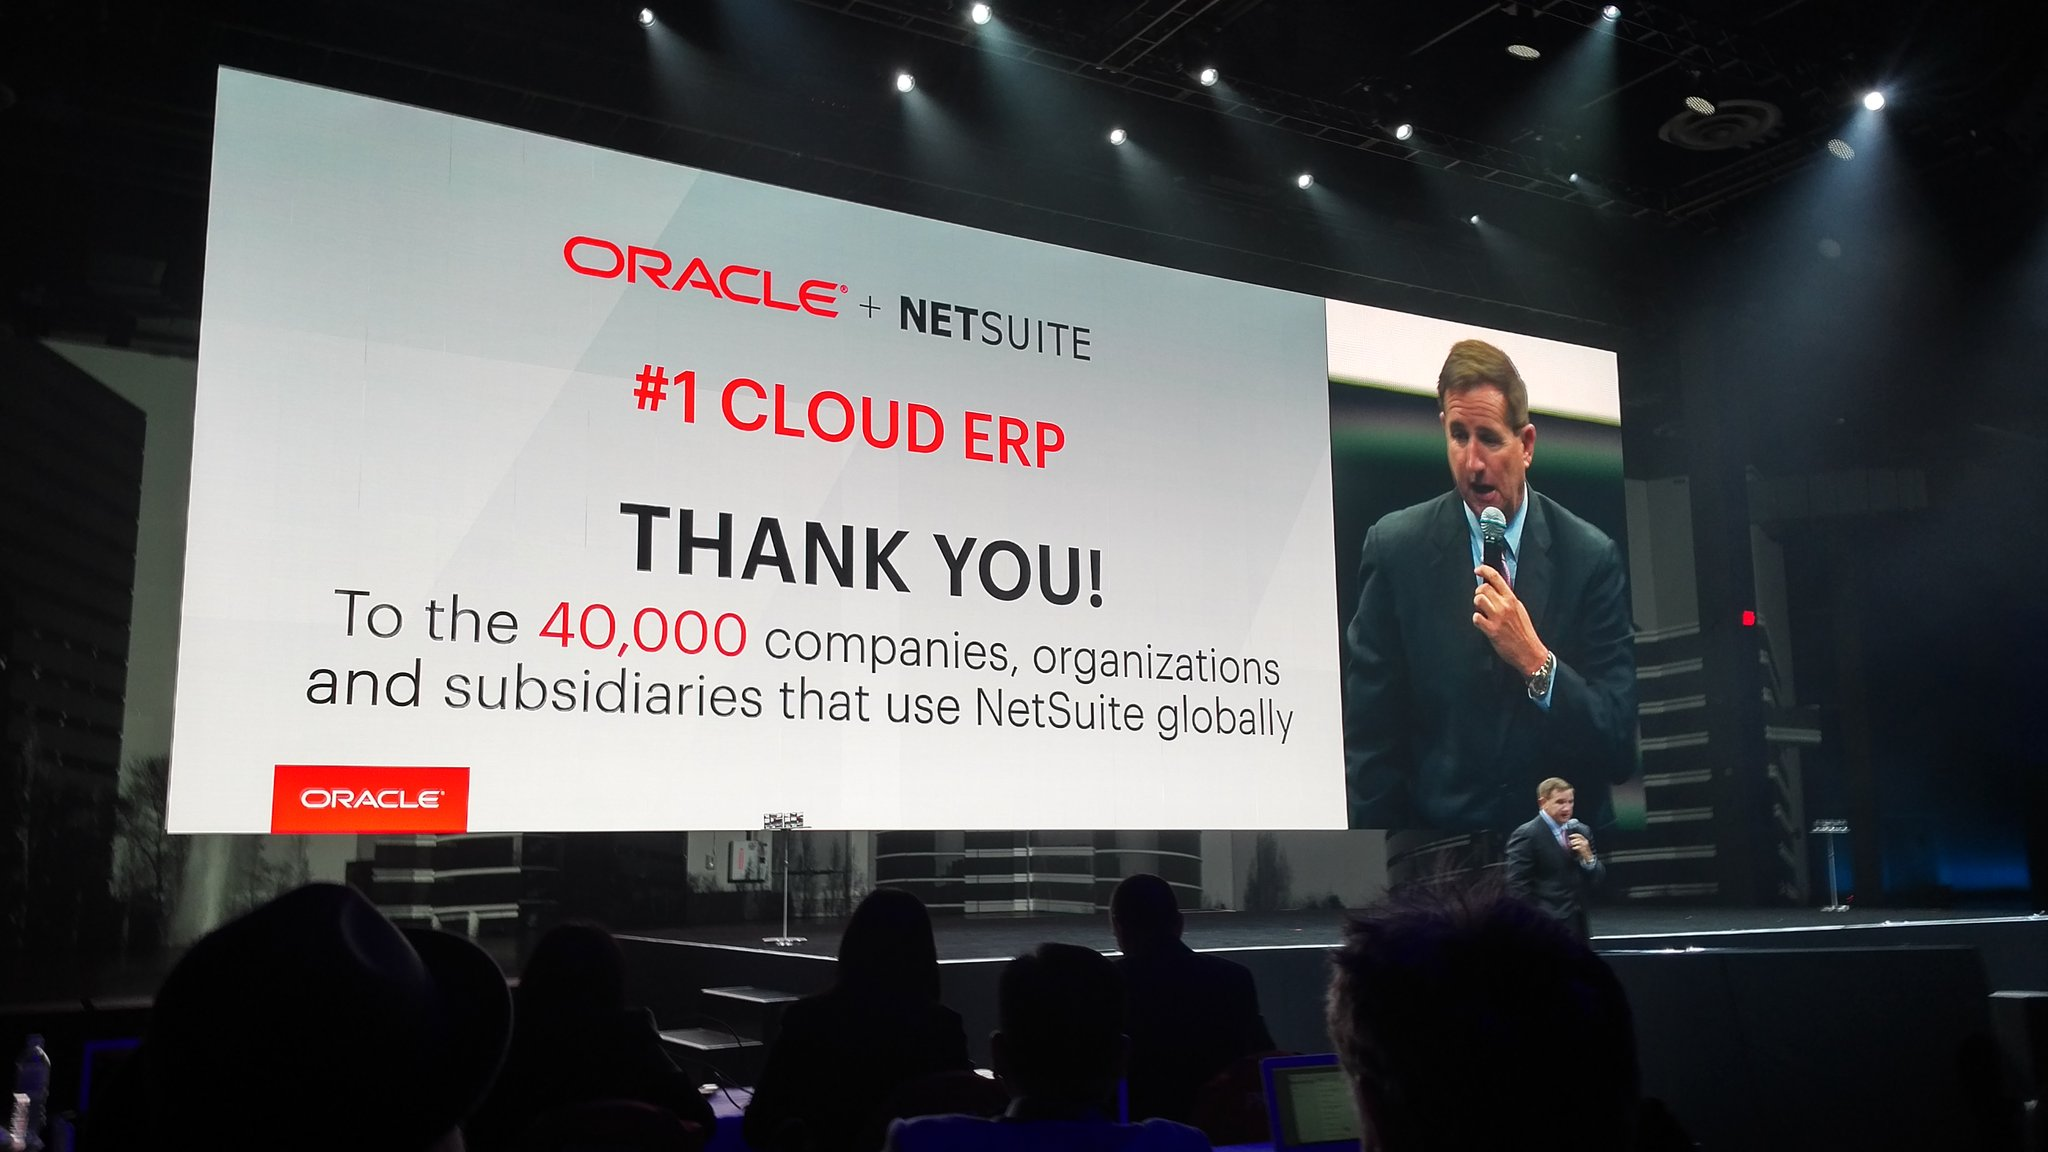 ...and @Oracle @MarkVHurd thank the @NetSuite customers. 40k #SuiteWorld17 https://t.co/2slI031fdB